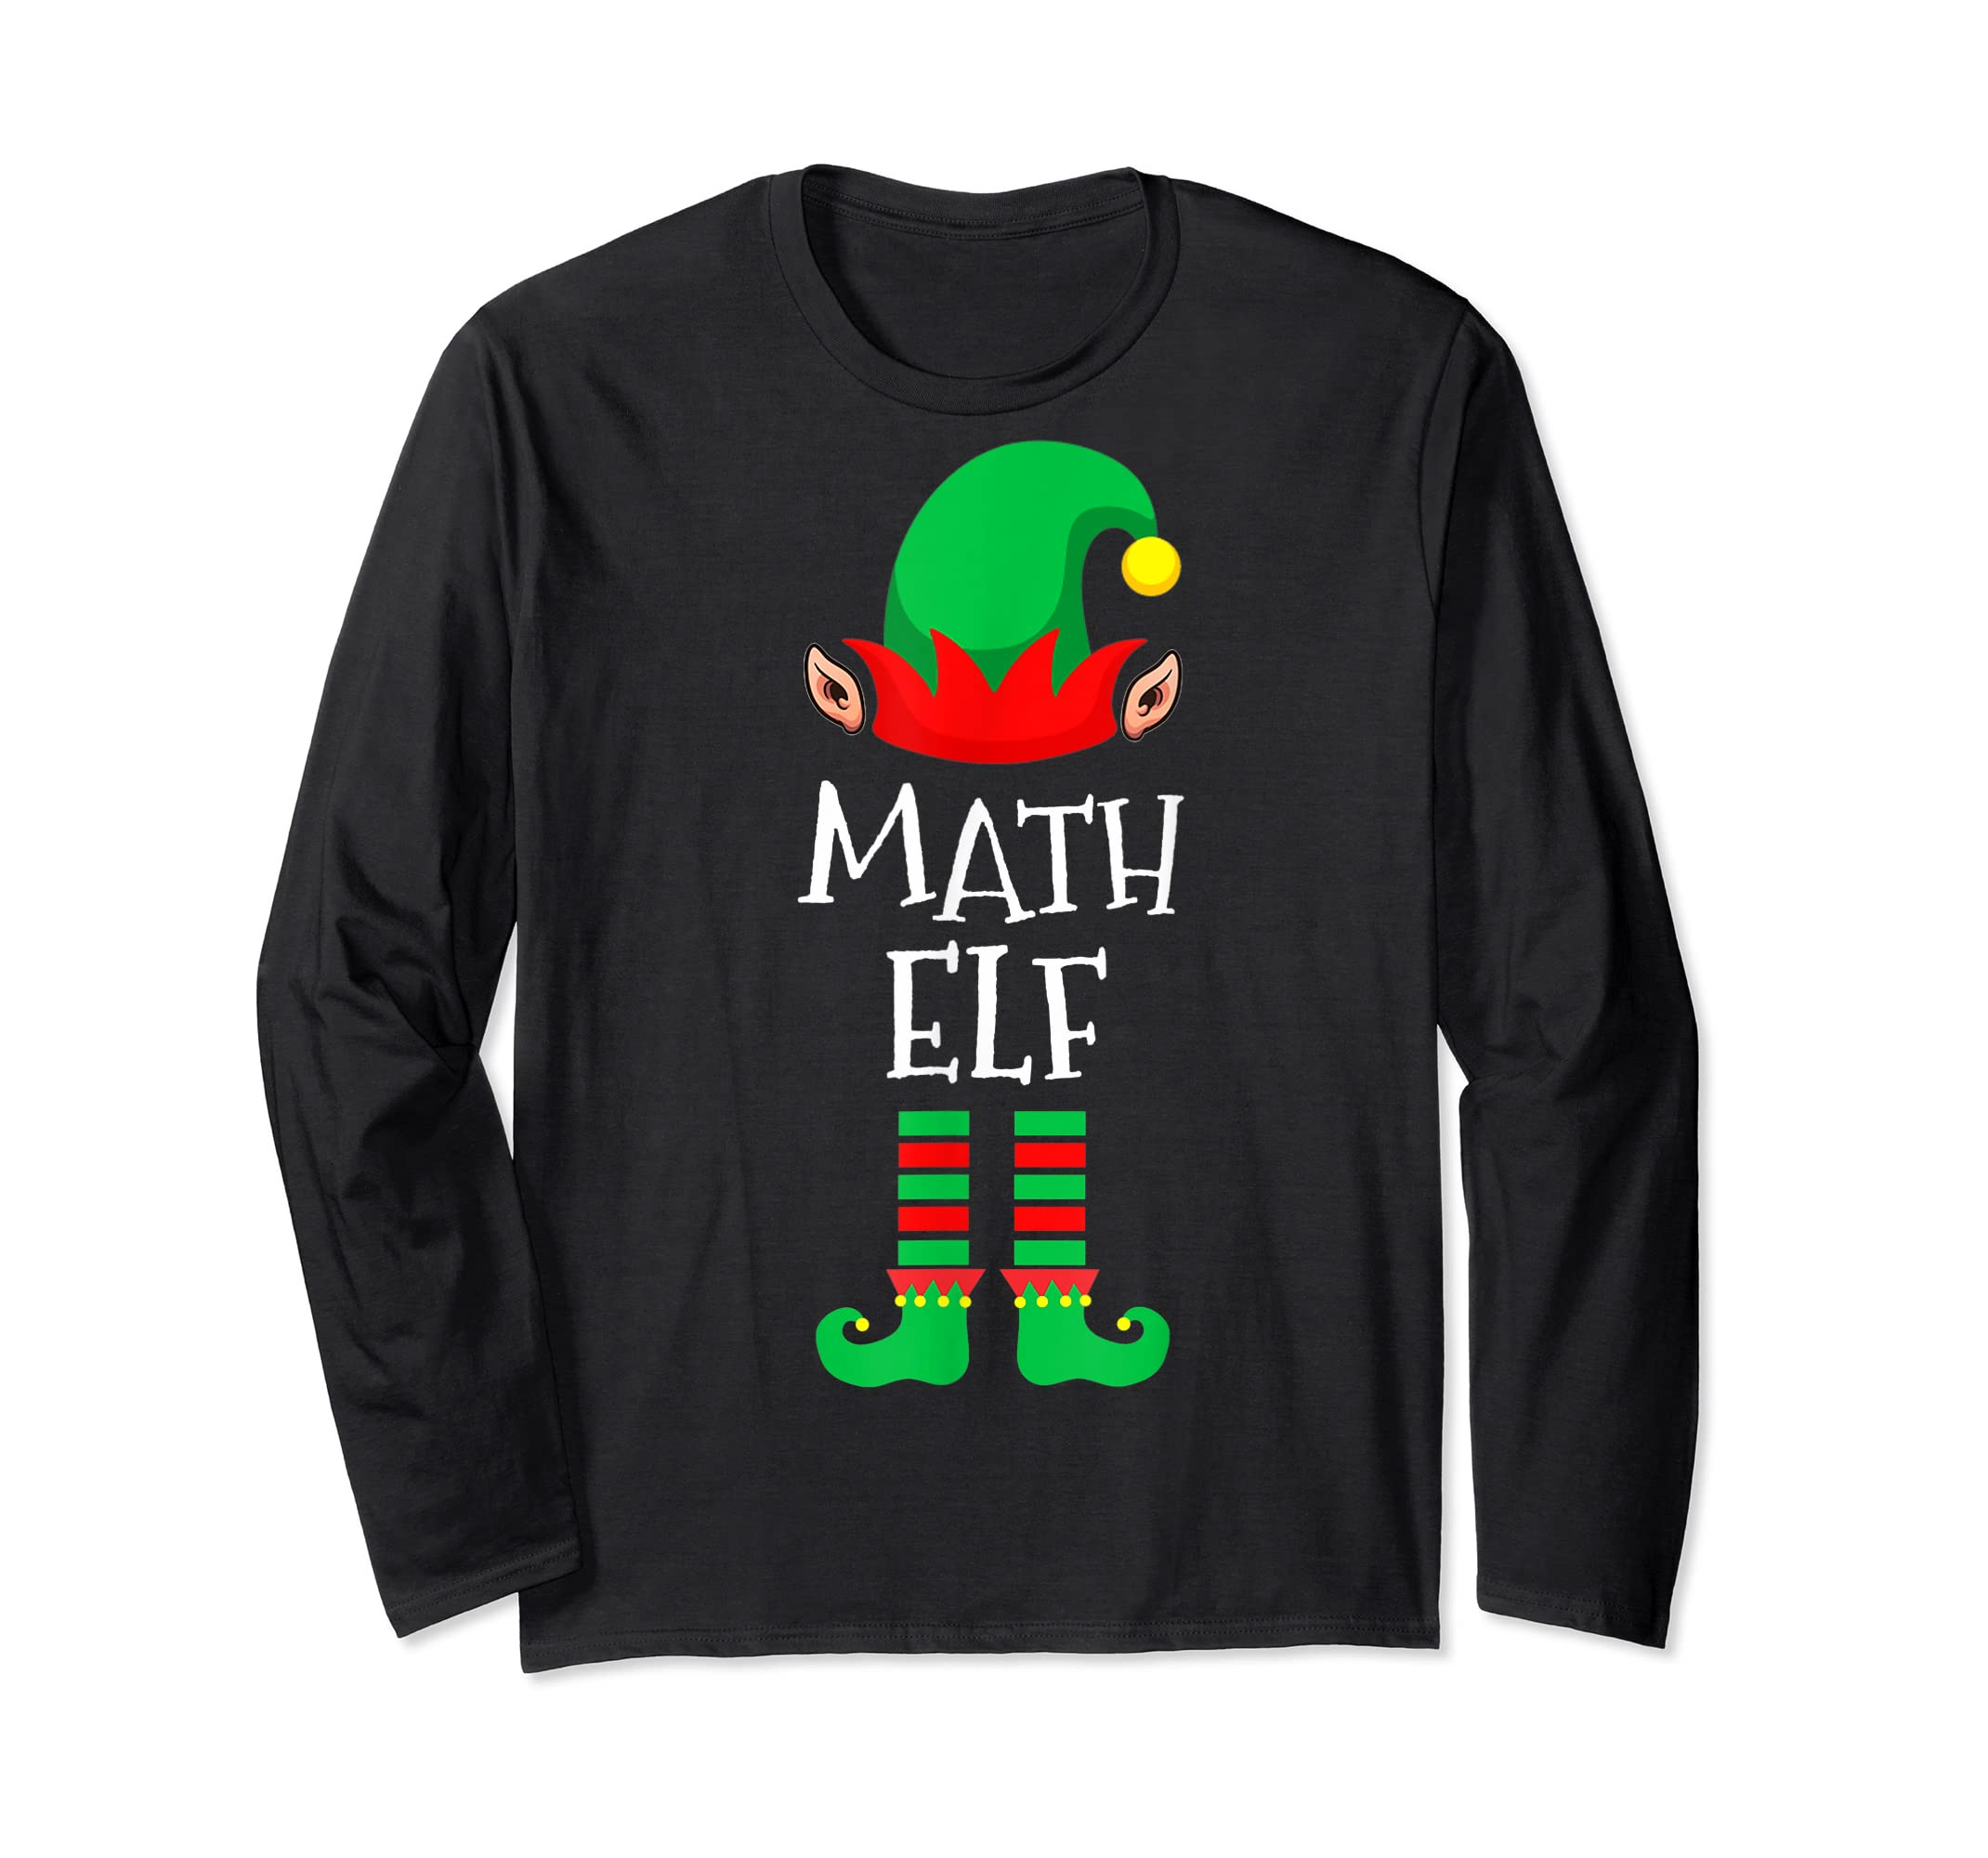 Math Elf - Funny School Teacher Christmas T-Shirt-Long Sleeve-Black